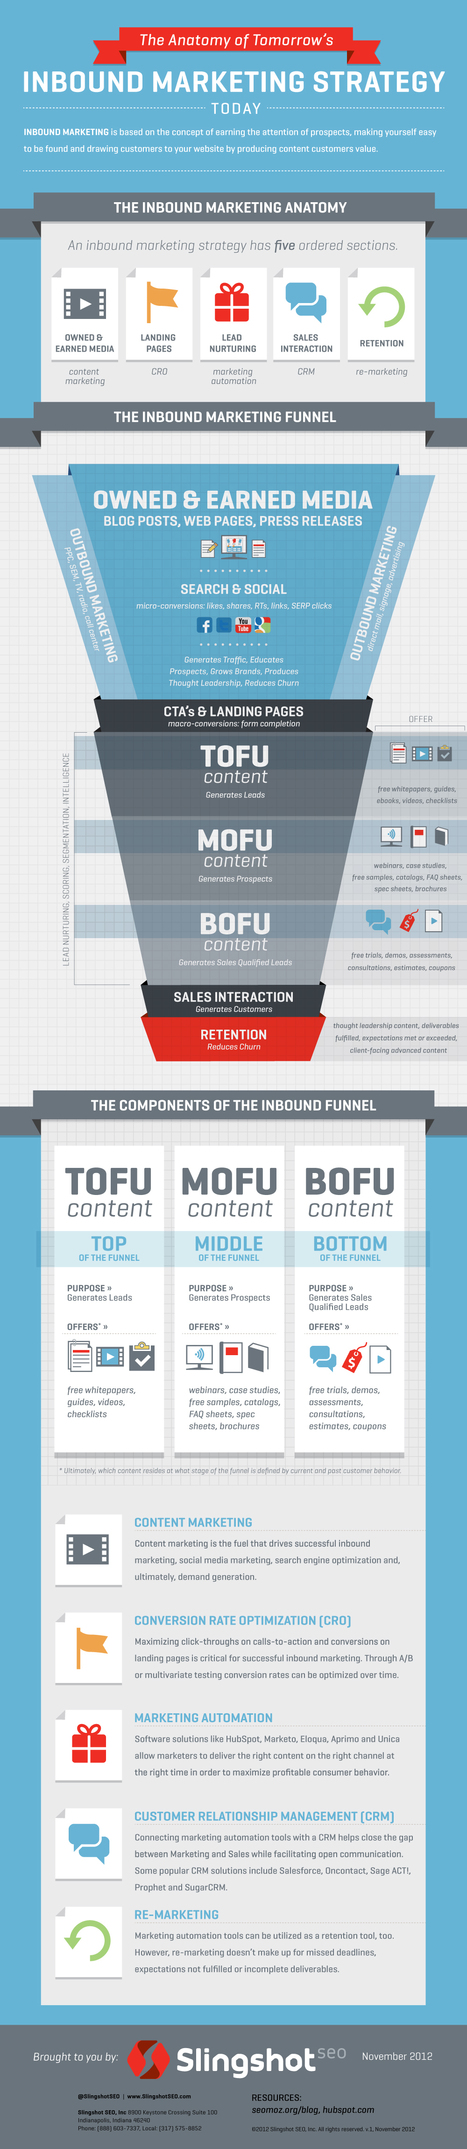 An In-Depth Look at the Inbound Marketing Funnel [Infographic ...   Digital Marketing & Marketing Automation   Scoop.it